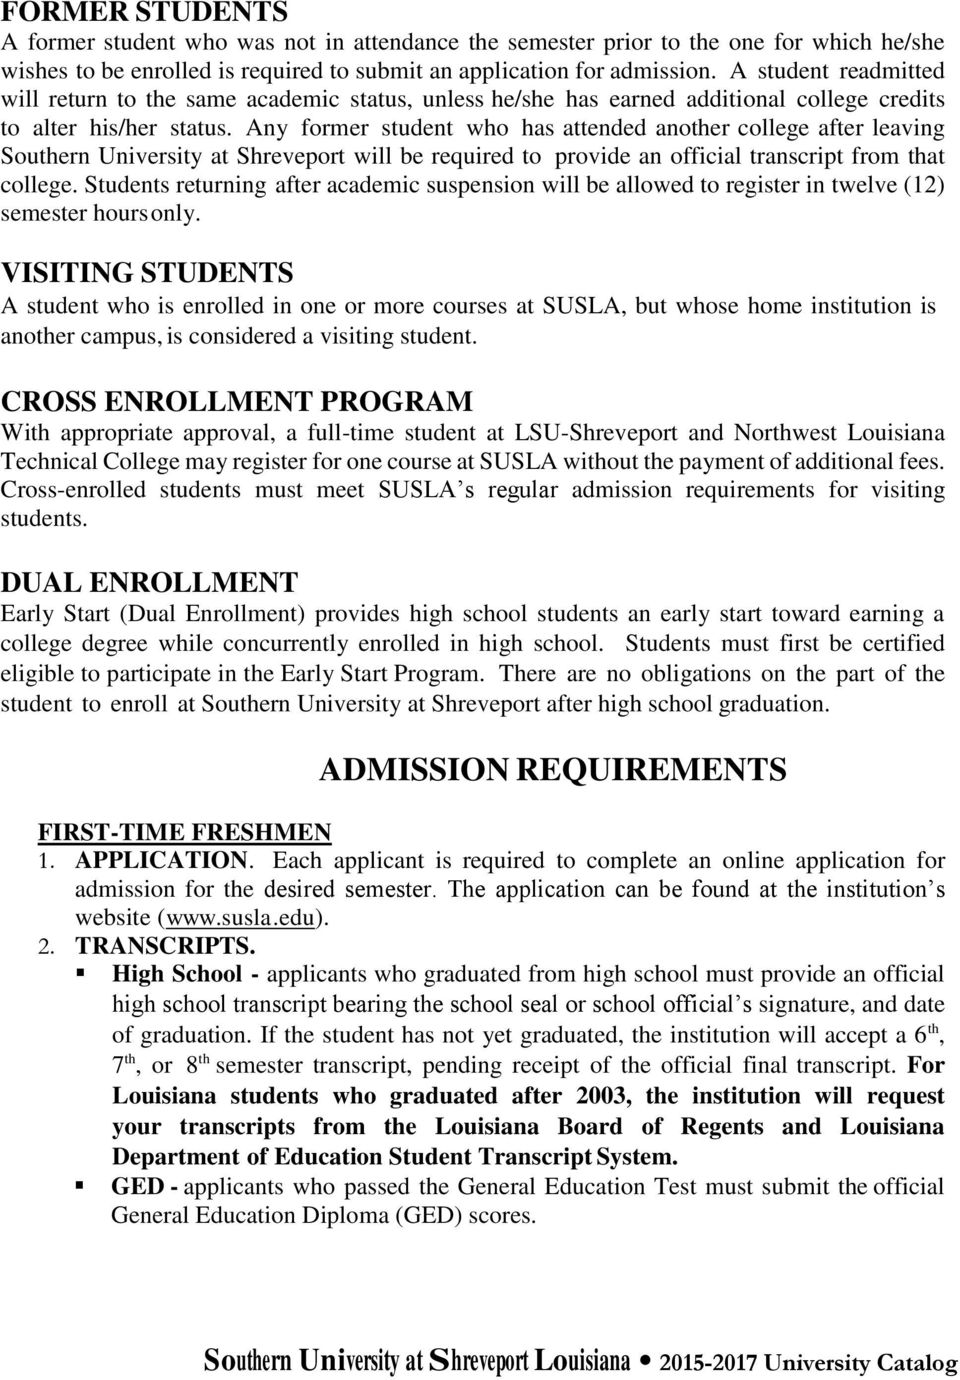 Any former student who has attended another college after leaving Southern University at Shreveport will be required to provide an official transcript from that college.